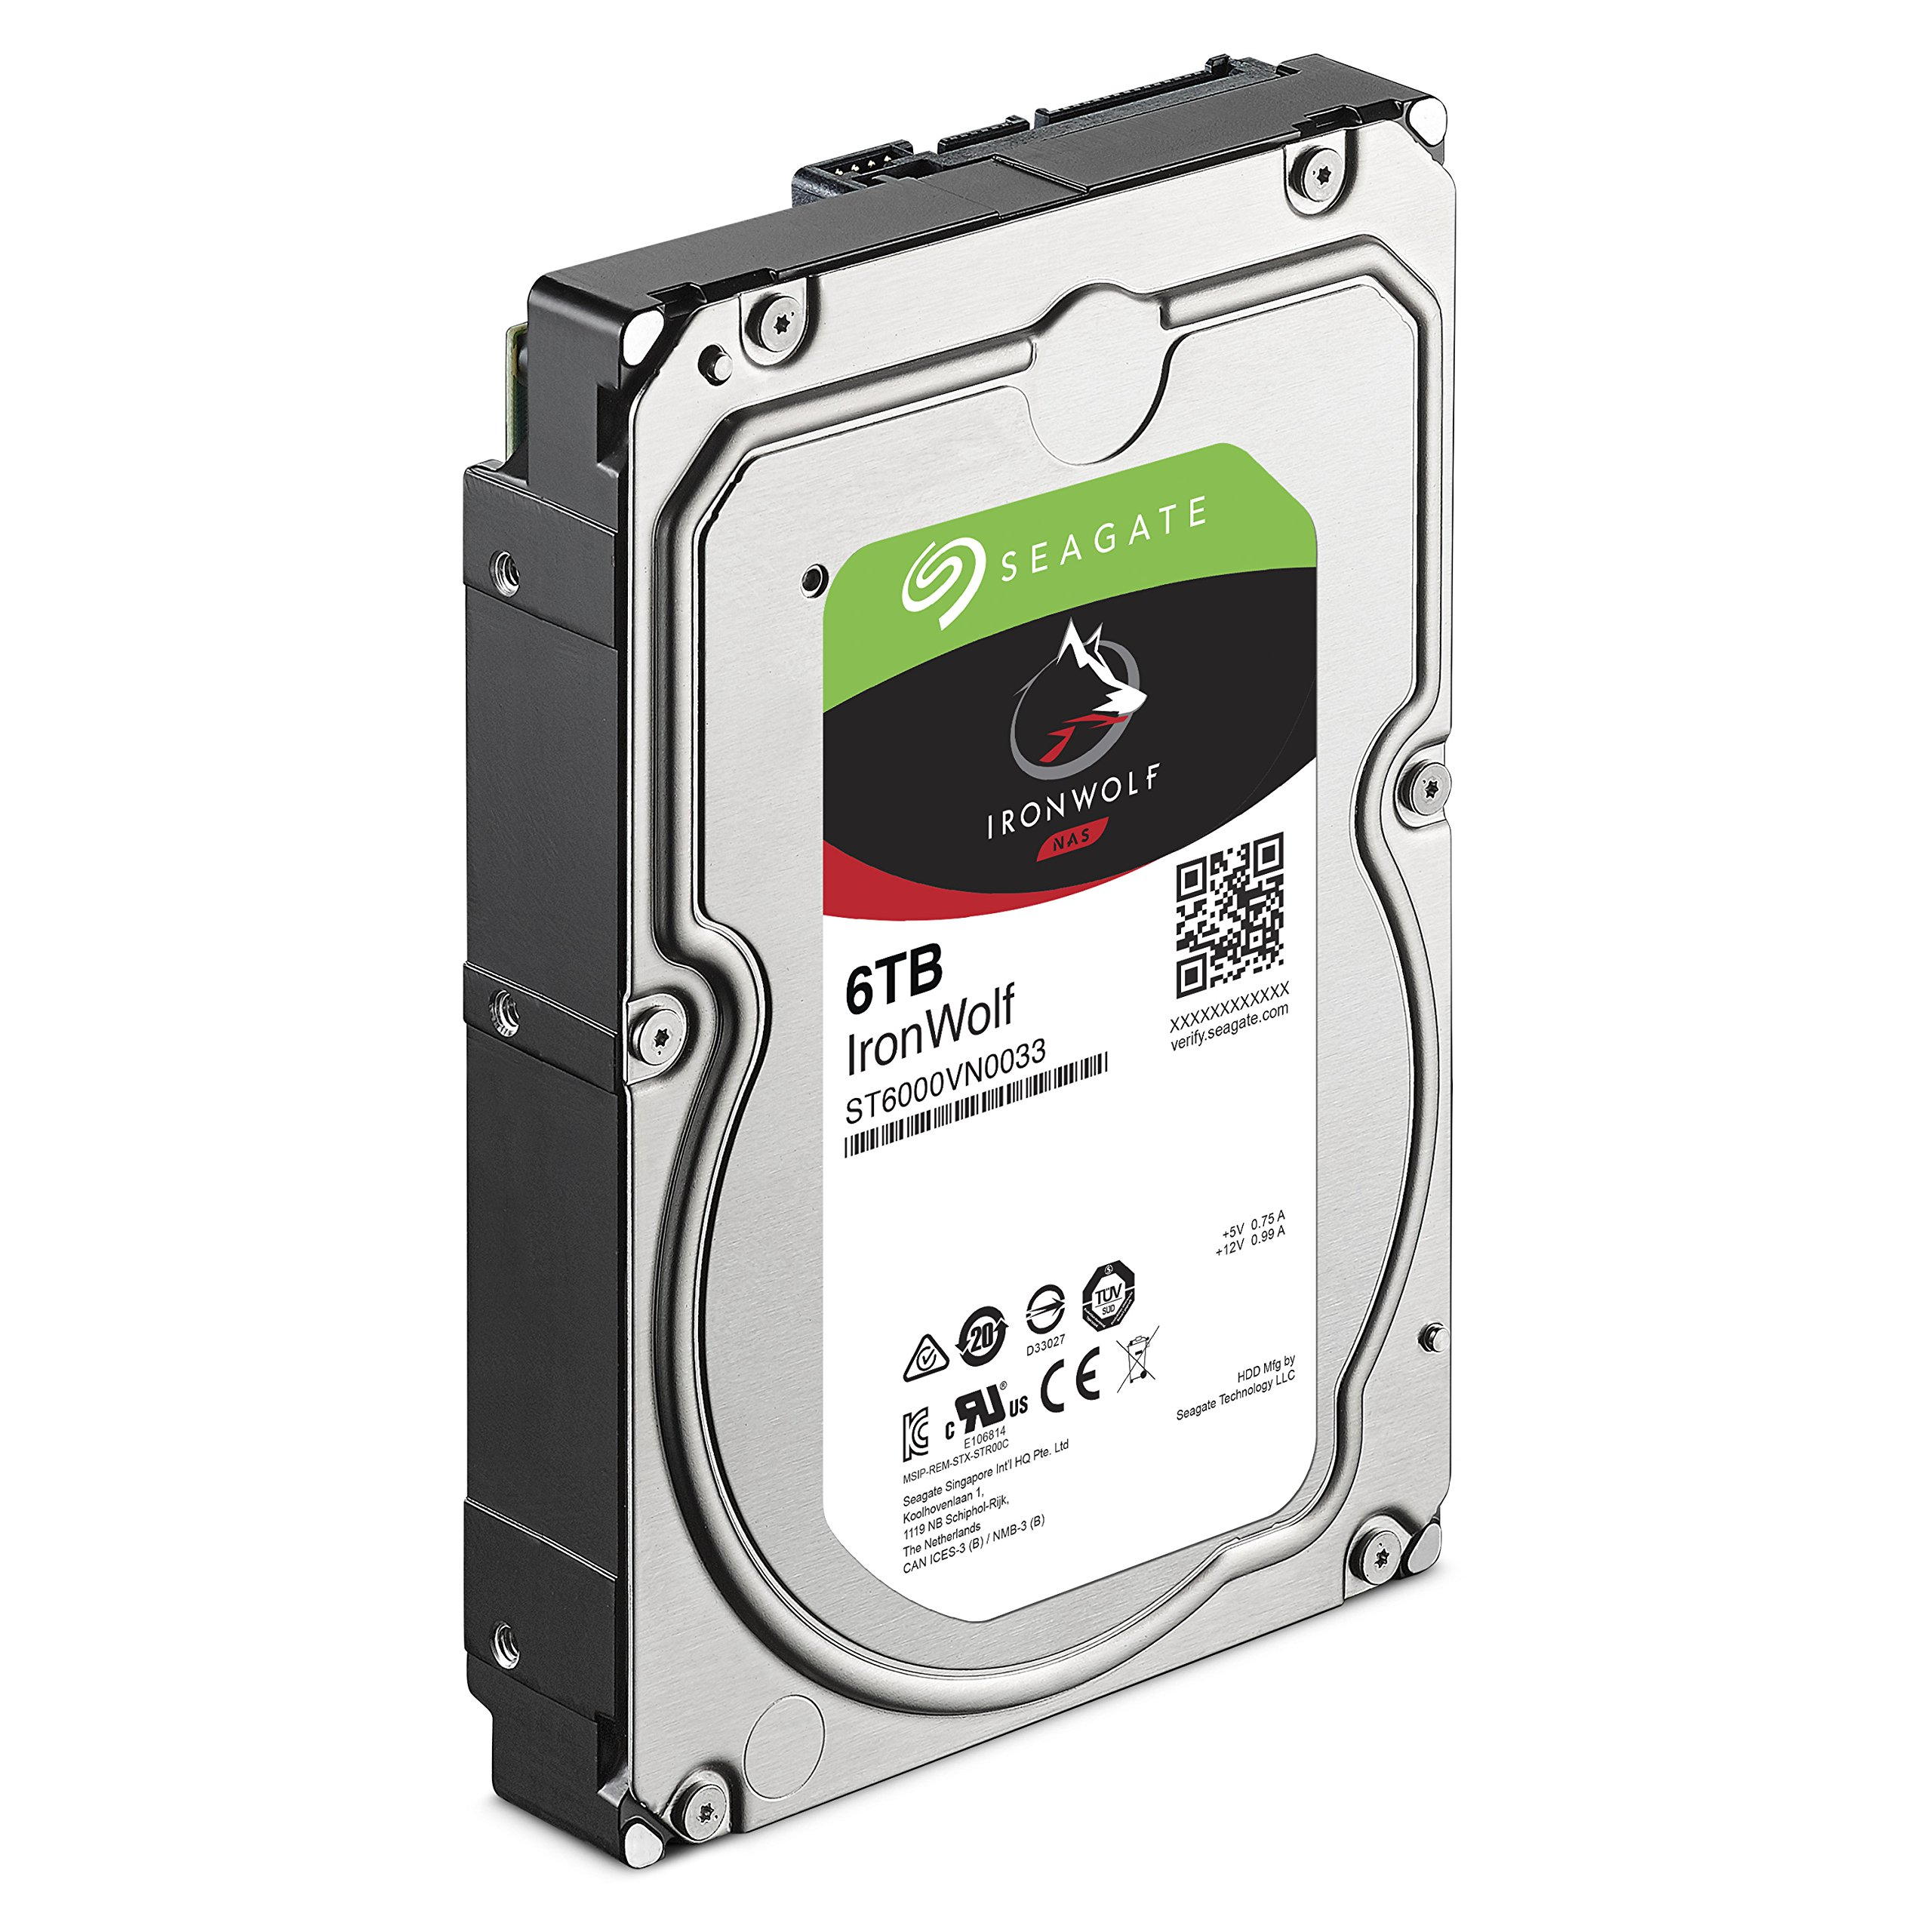 Seagate Ironwolf 6 TB NAS RAID Internal Hard Drive - 7,200 RPM SATA 6 Gb/s 3.5-inch - Frustration Free Packaging  (ST6000VN0033) by Seagate (Image #3)